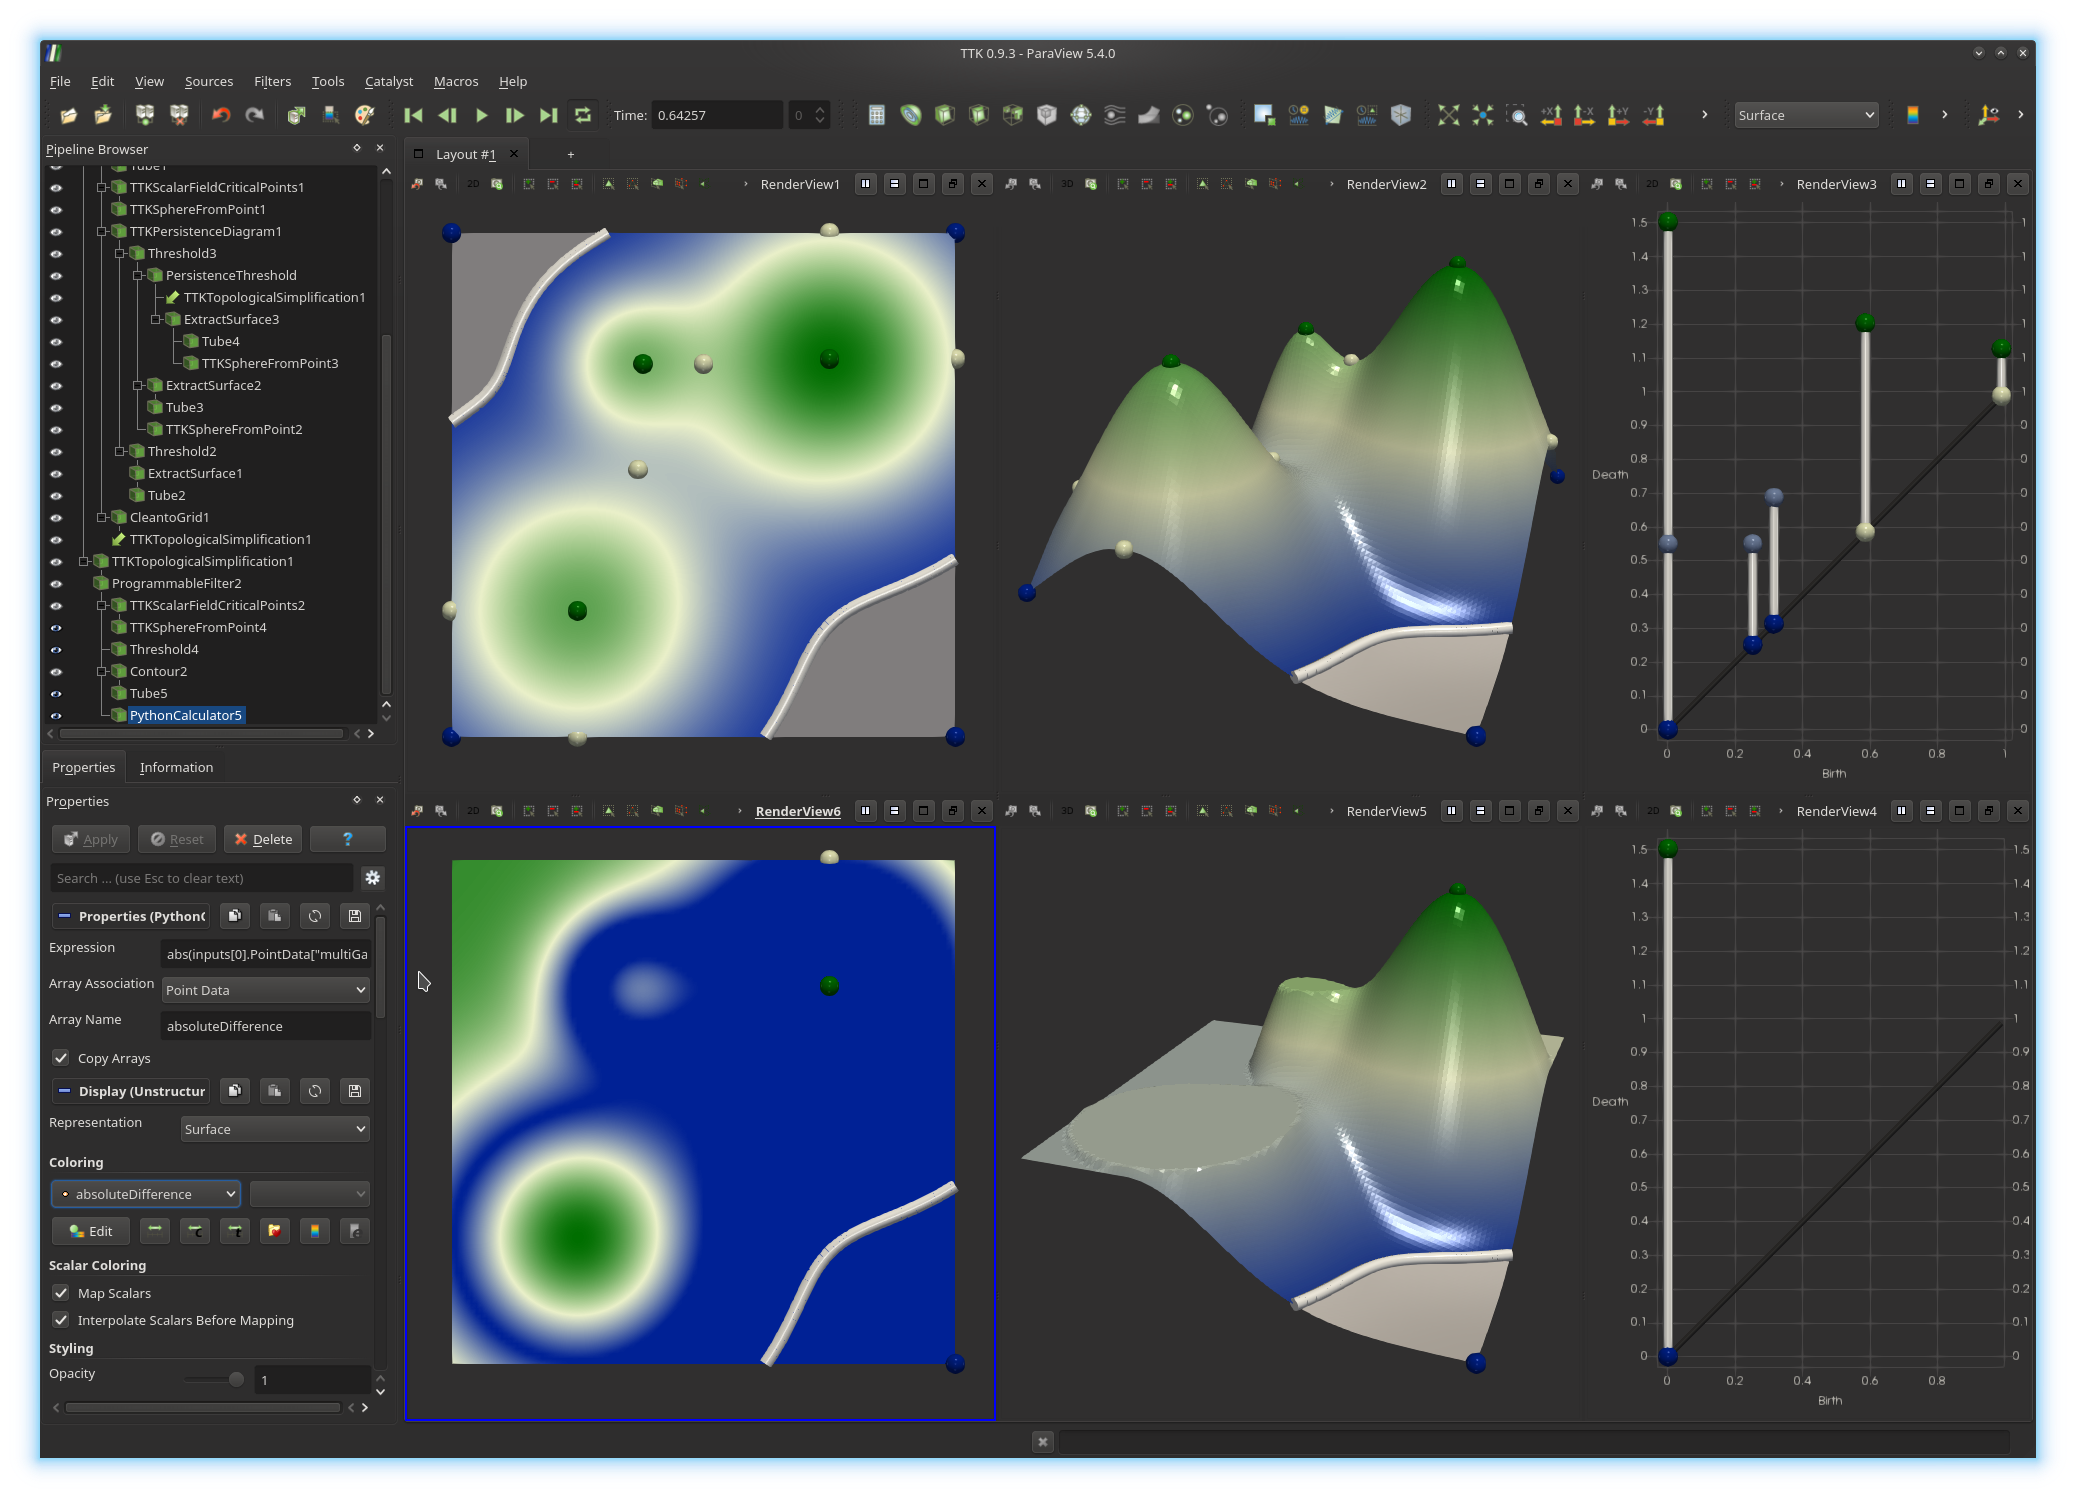 TTK - the Topology ToolKit - Topological Data Analysis and Visualization